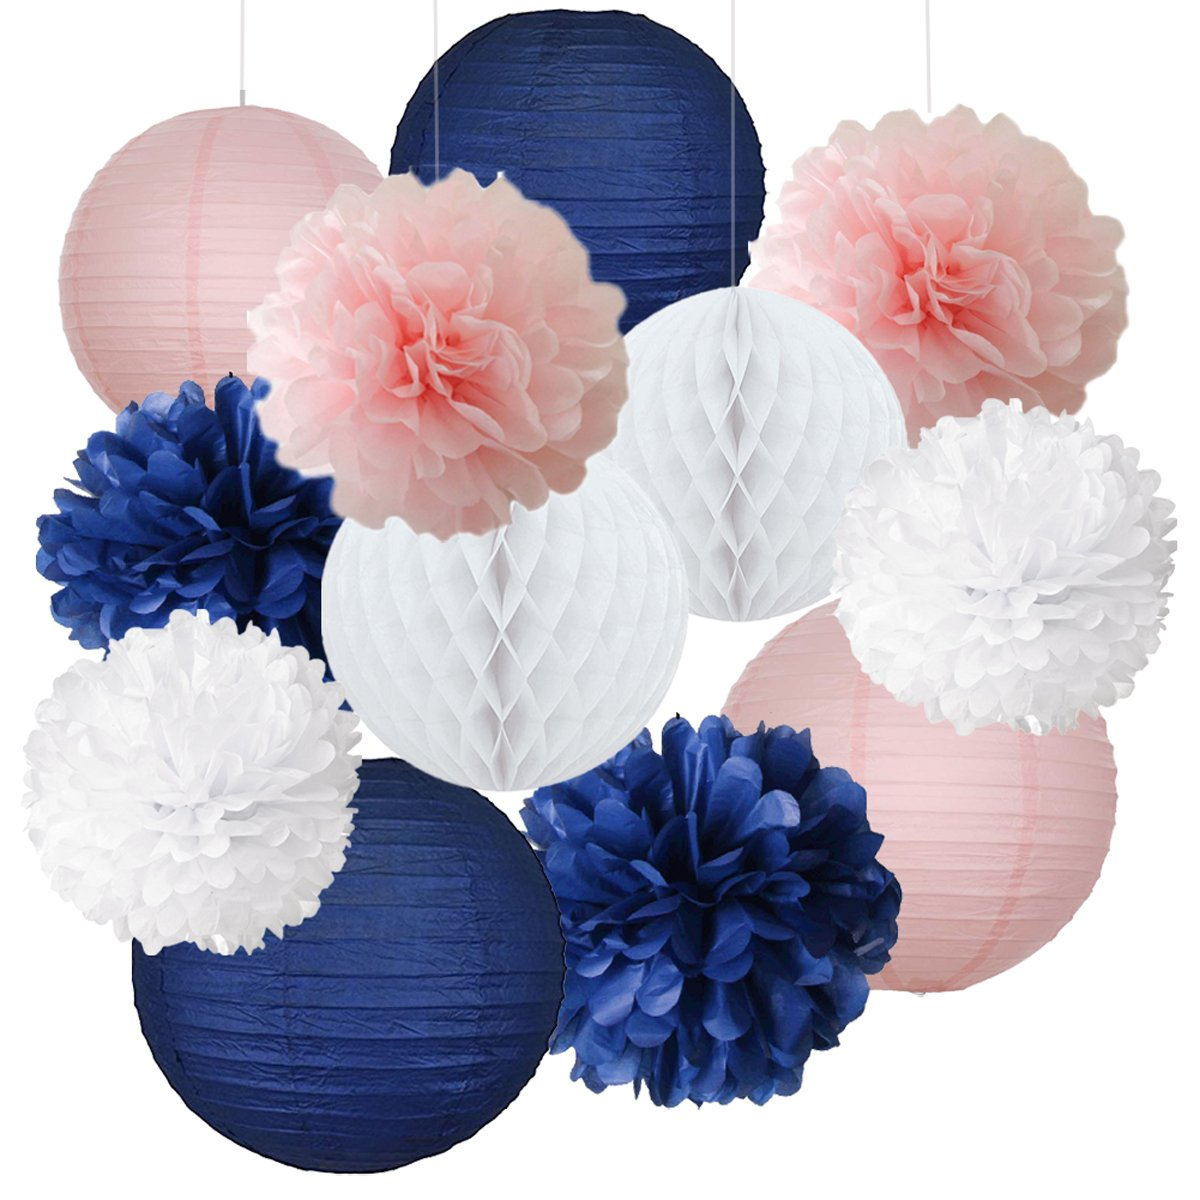 12pcs Mixed Navy Blue Pink White Party Tissue Pom Poms Hanging Paper Lantern Honeycomb Balls Nautical Themed Vintage Wedding Birthday Girl Baby Shower Nursery Decoration DreammadeStudio